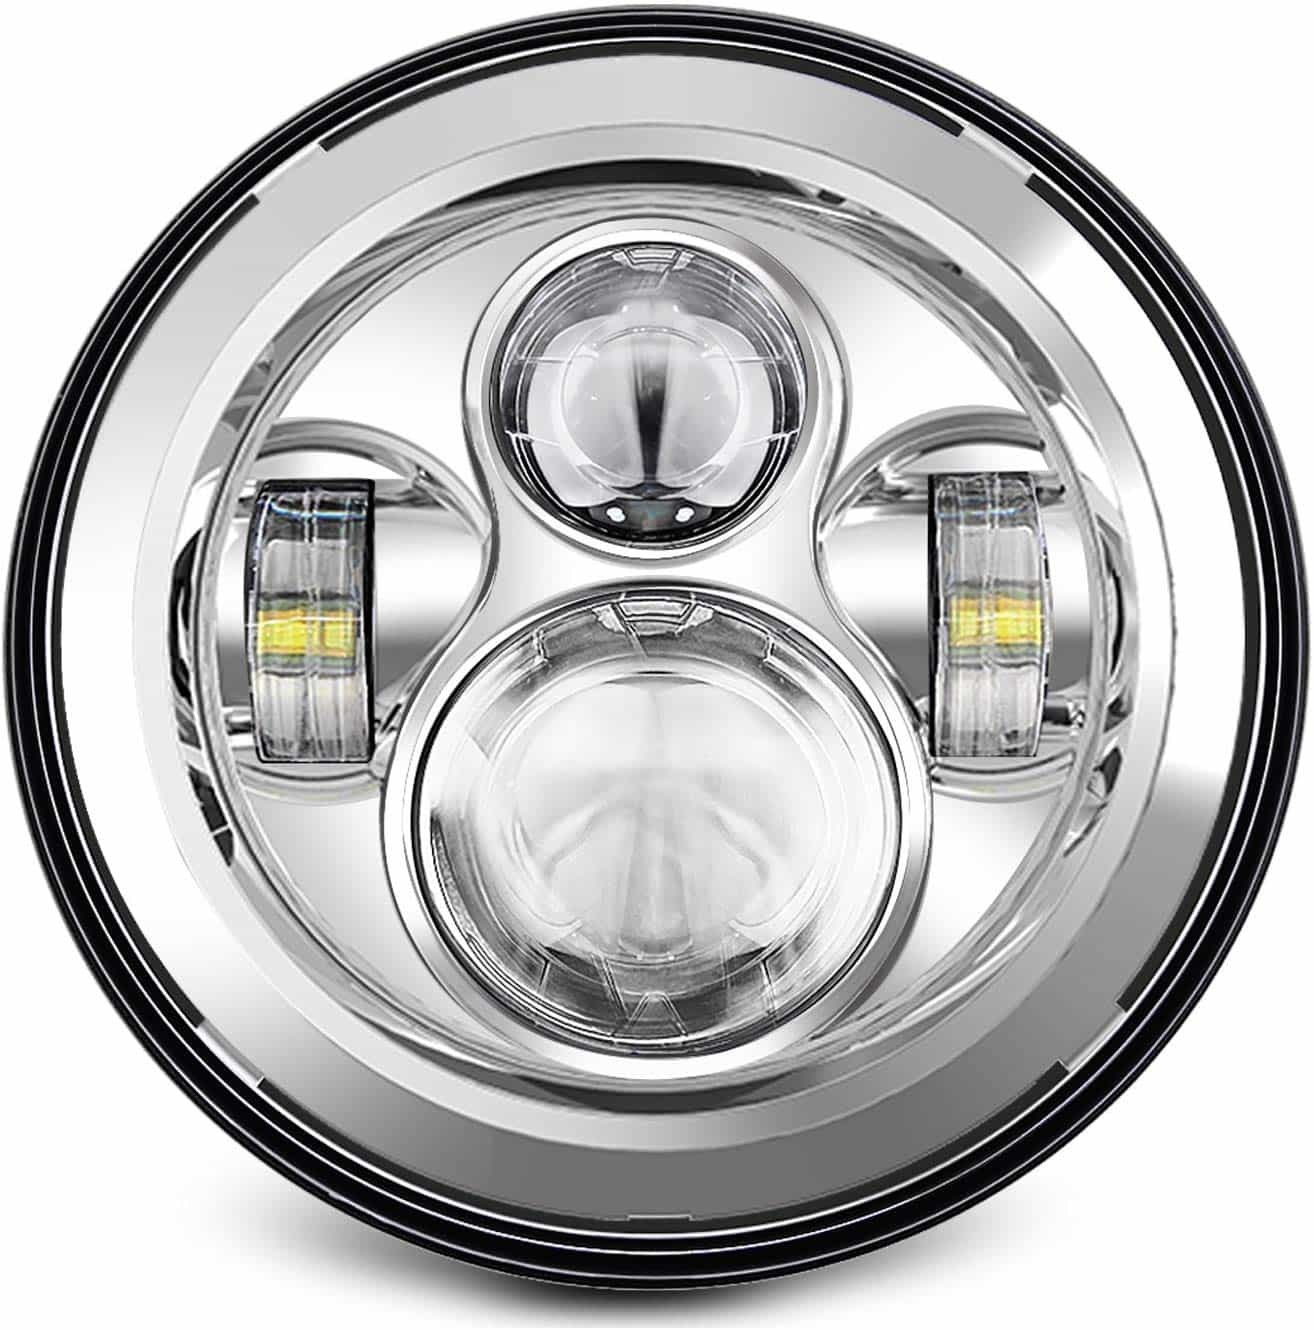 SUNPIE_7_LED_Headlight_for_Harley_Davidson_Motorcycle